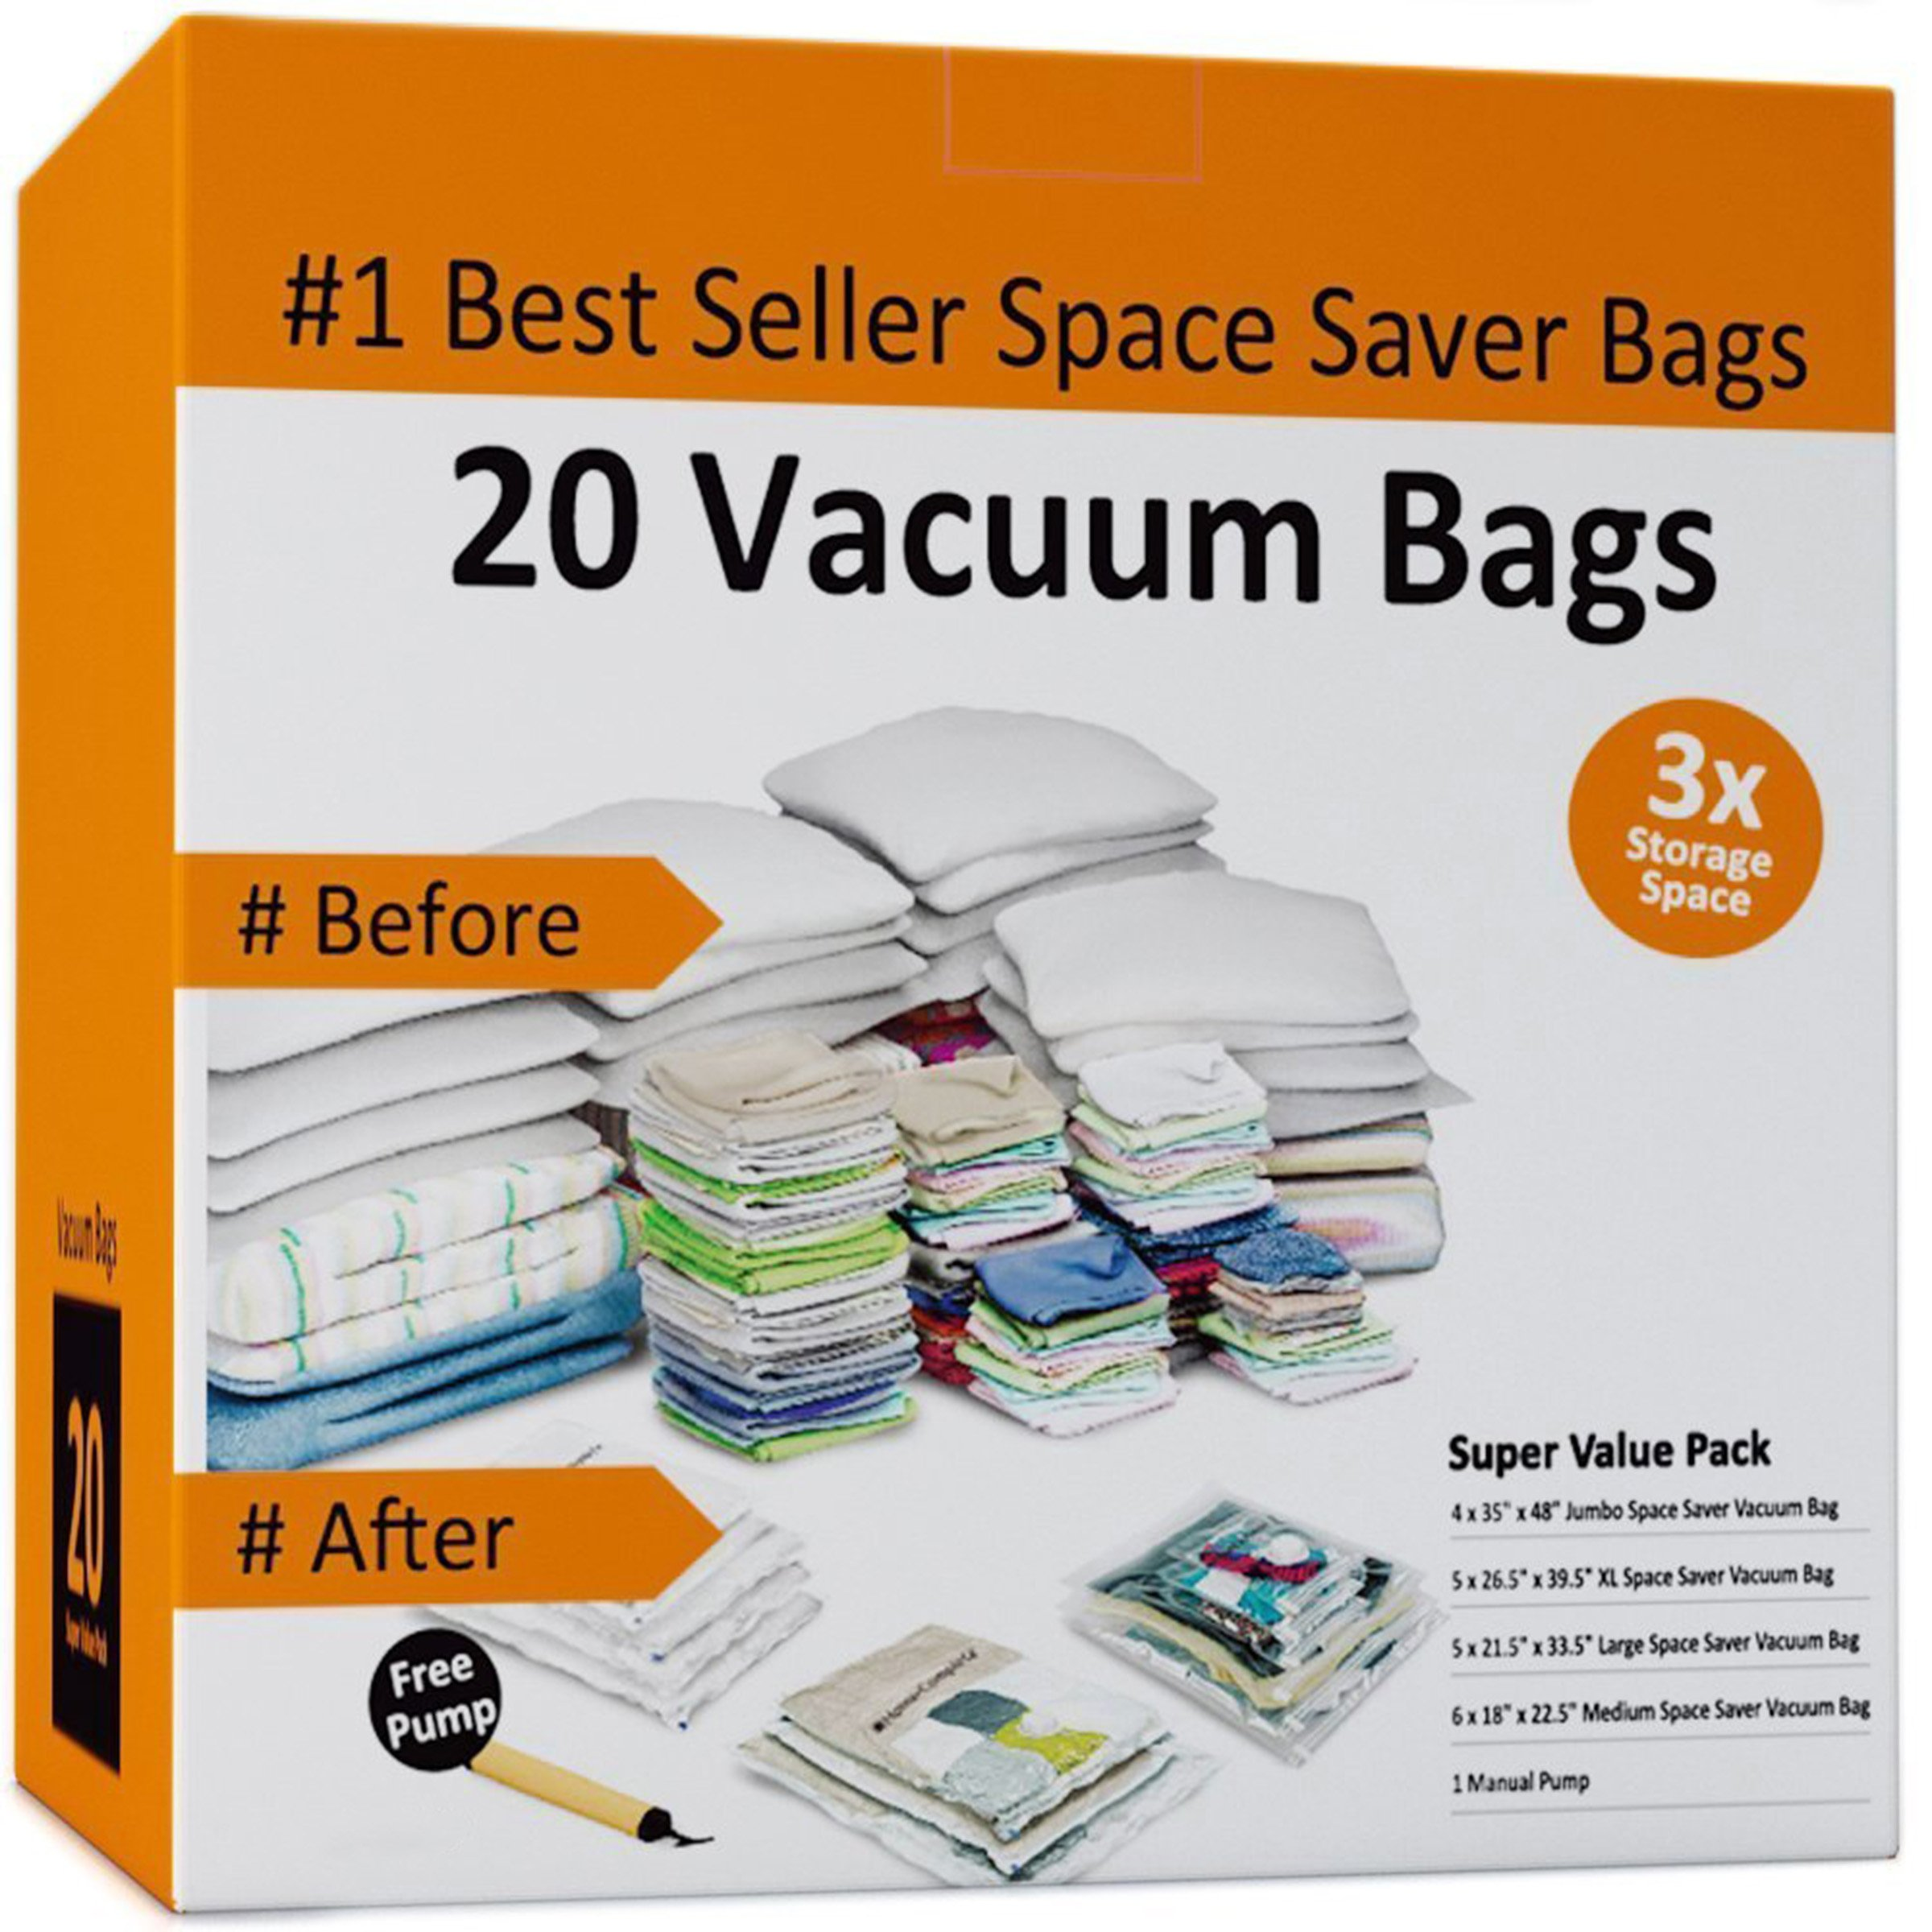 Everyday Home 83-78 Vacuum Storage Bags-Space Saving Air Tight Compression-Shrink Down Closet Clutter, Store and Organize Clothes, Linens, Seasonal Items, 20